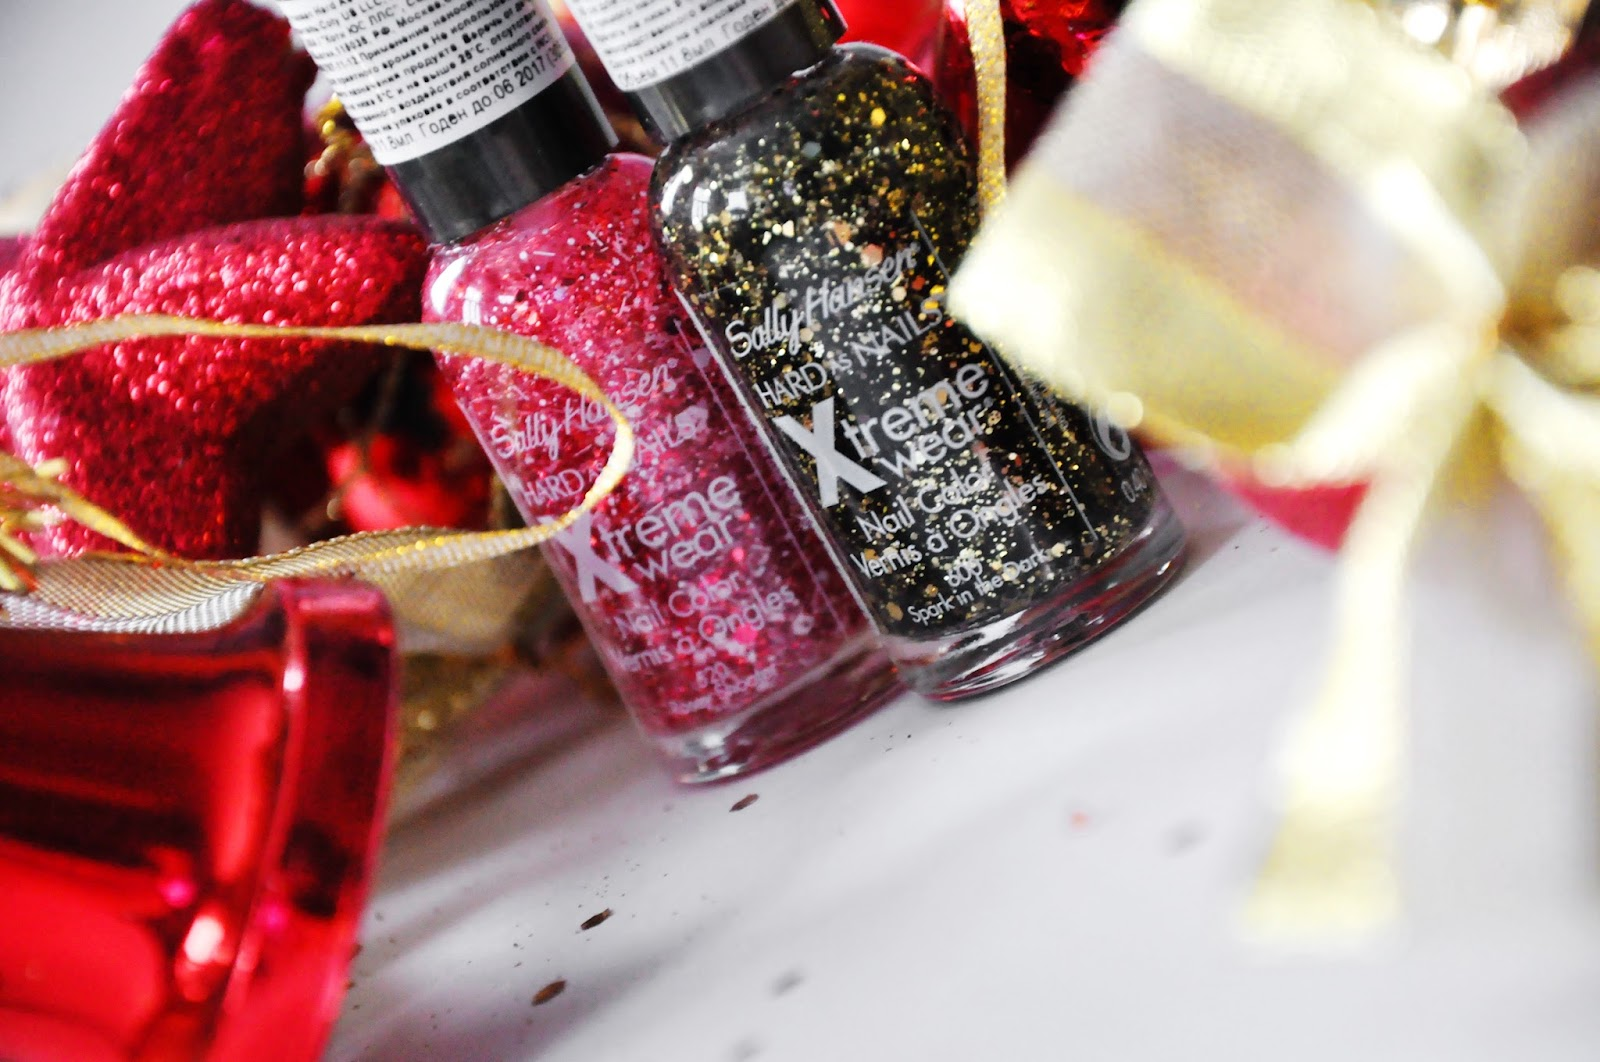 SALLY HANSEN Xtreme wear for Christmas 2013 #520 Rosey Shooter #600 Spark in the Dark